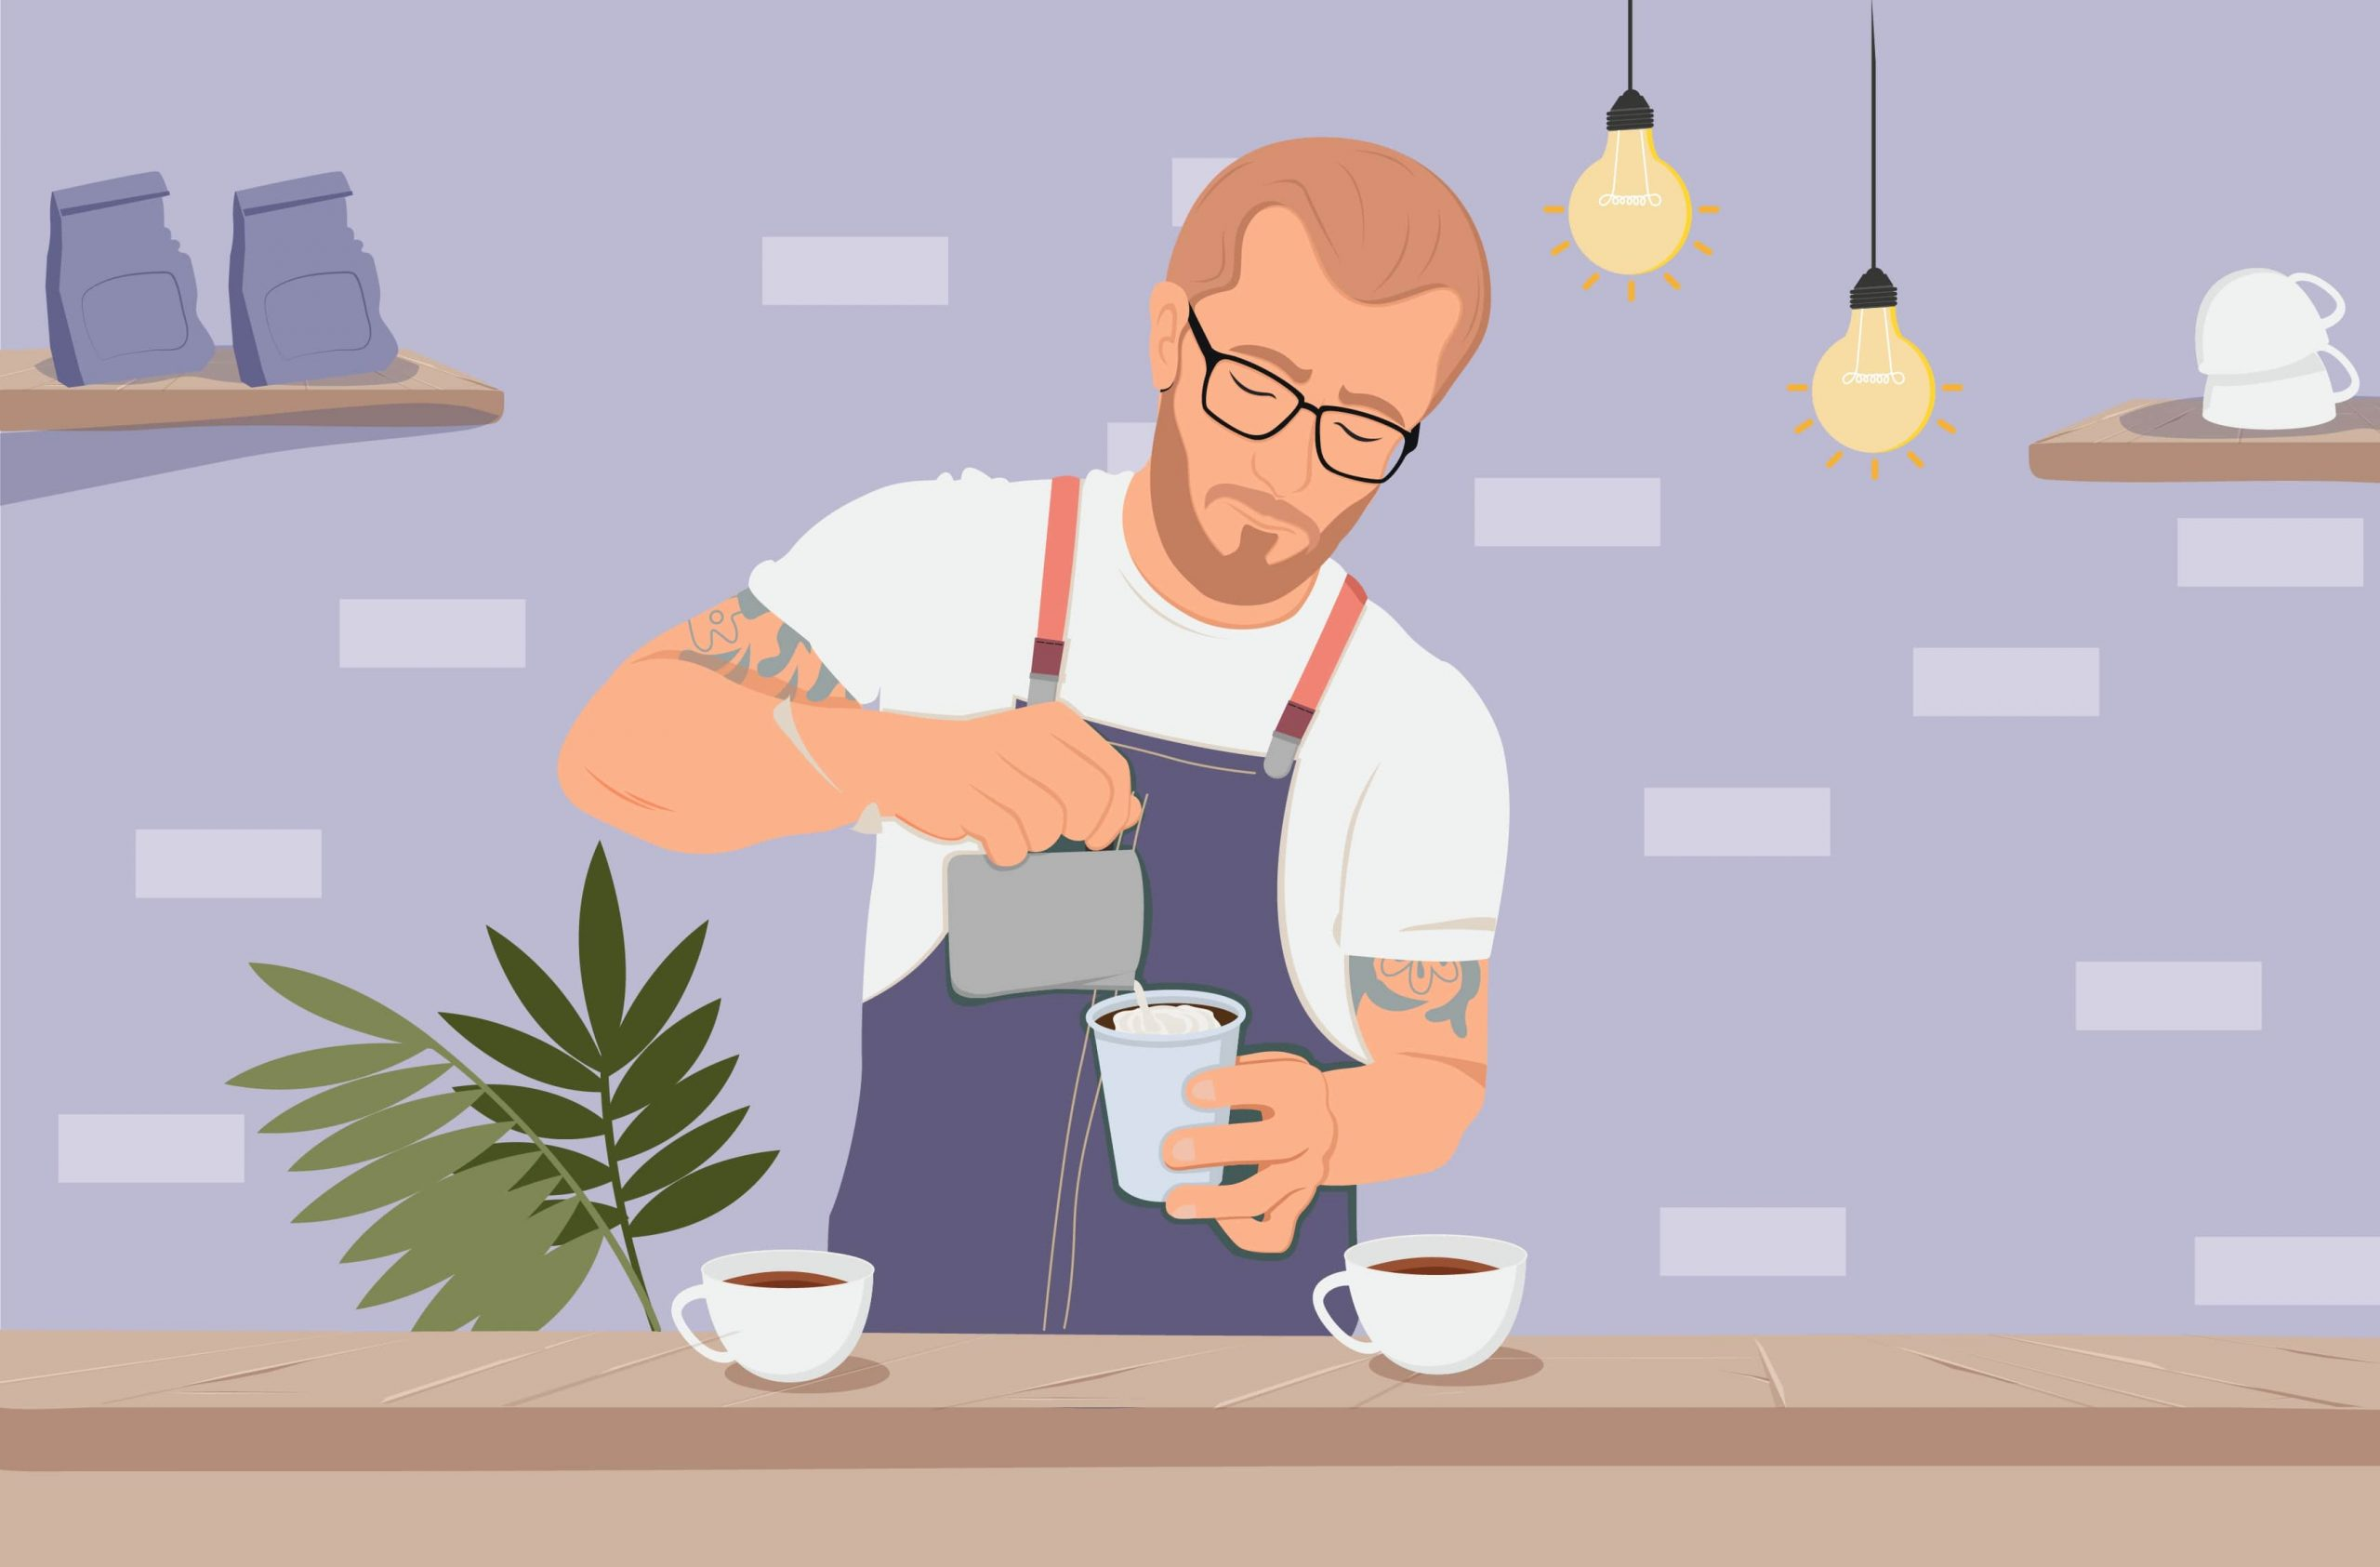 Is Coffee Bad for You? Health Benefits and Risks of Coffee